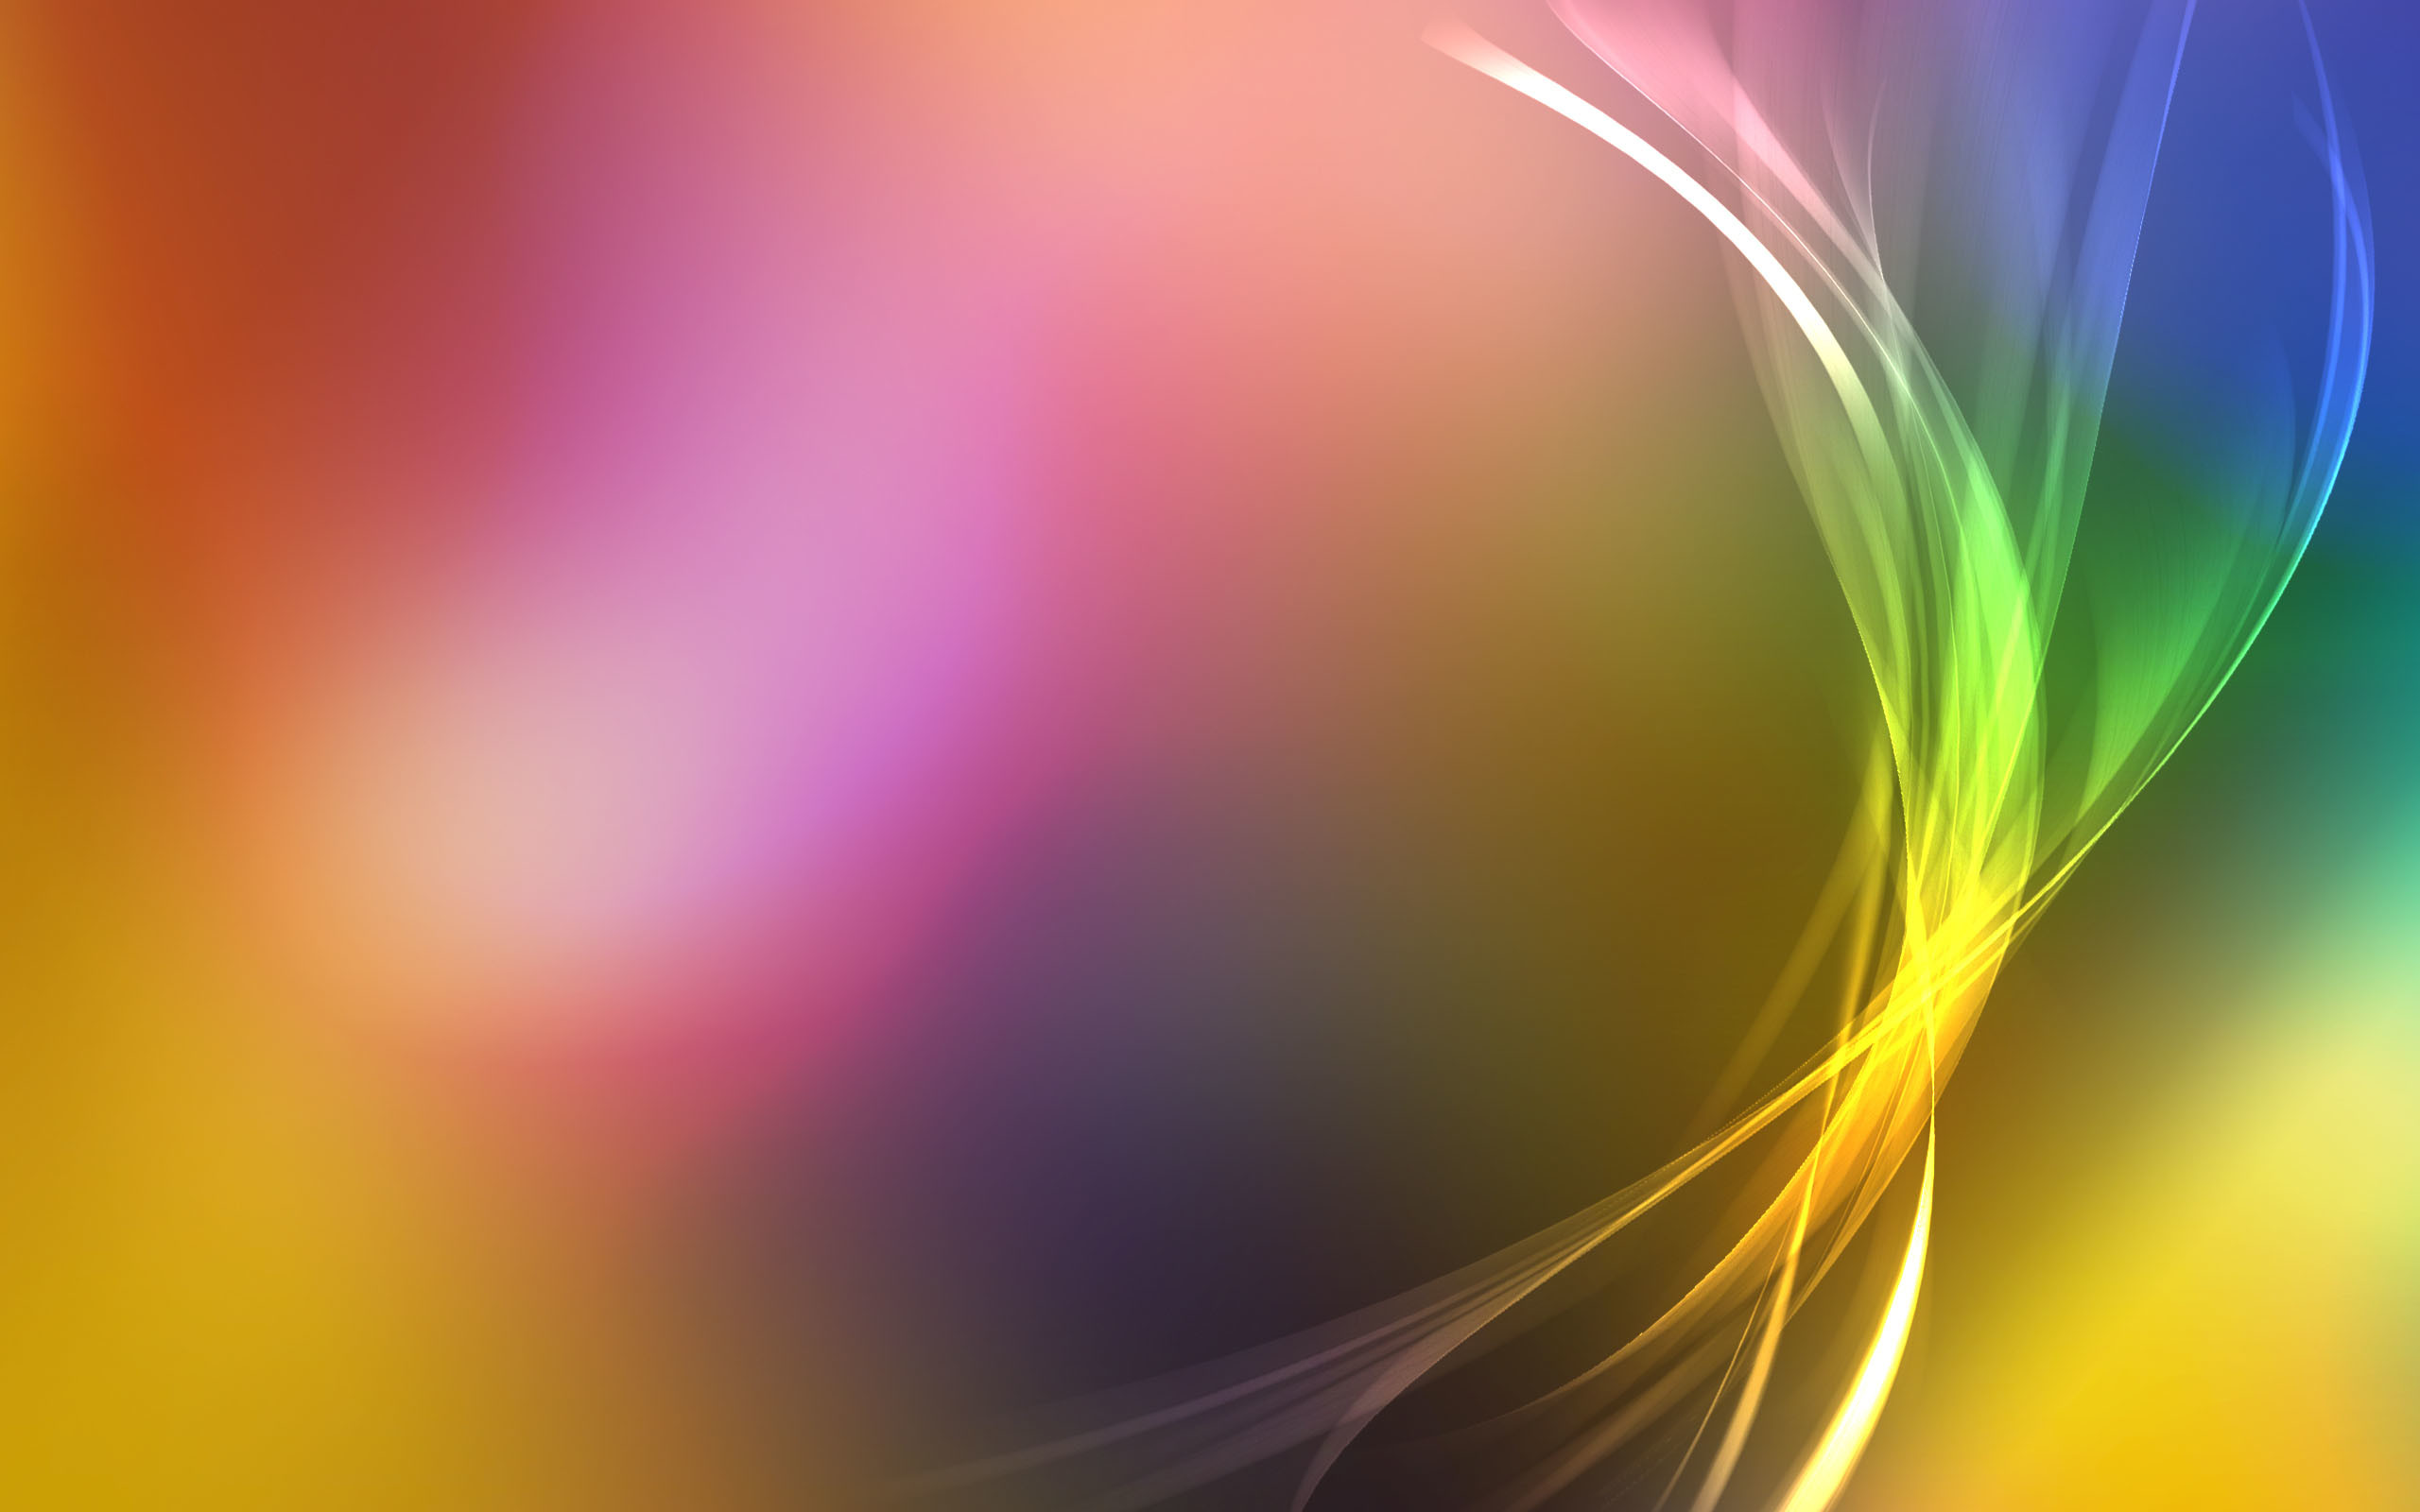 colorful hd backgrounds ·①